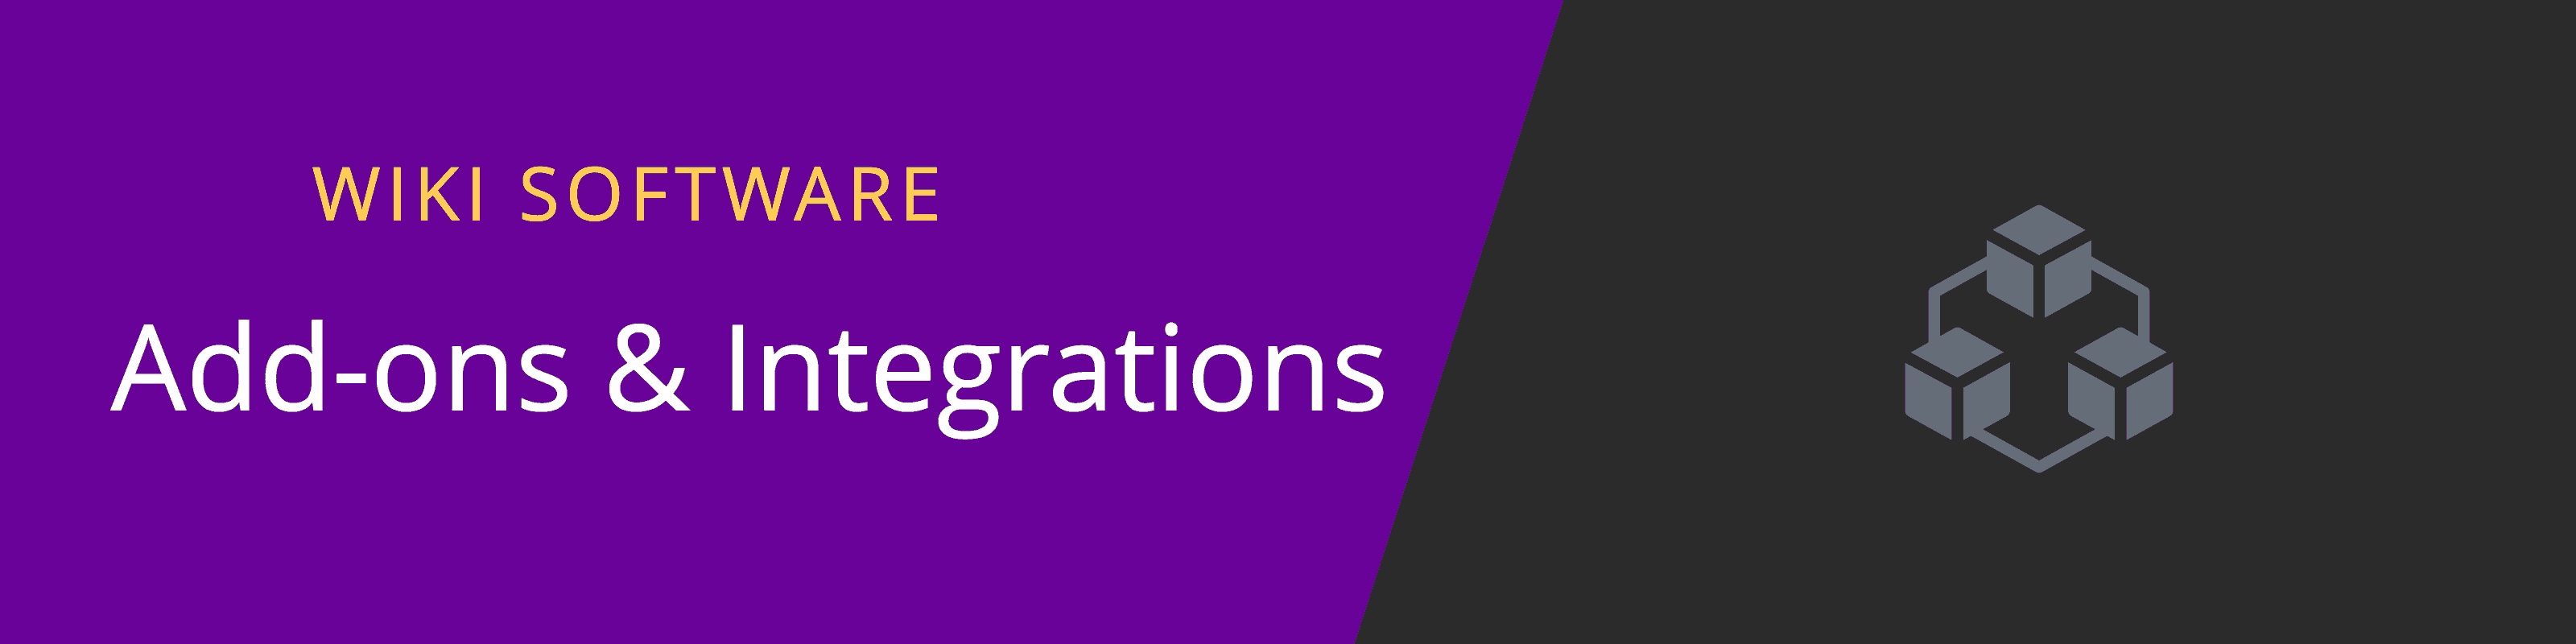 wiki addons and integrations